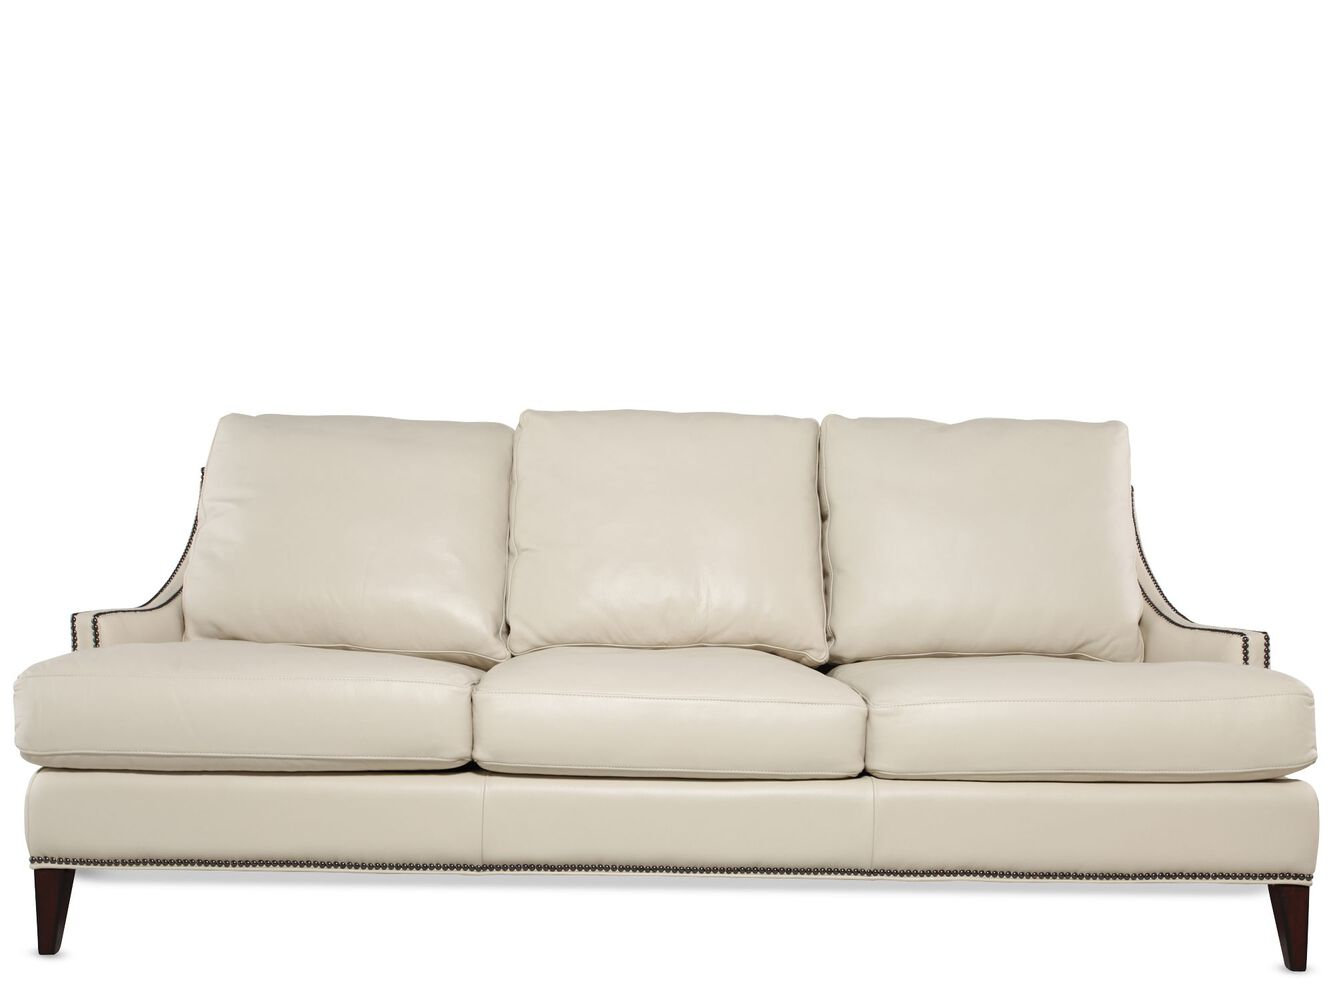 Henredon White Leather Sofa Mathis Brothers Furniture